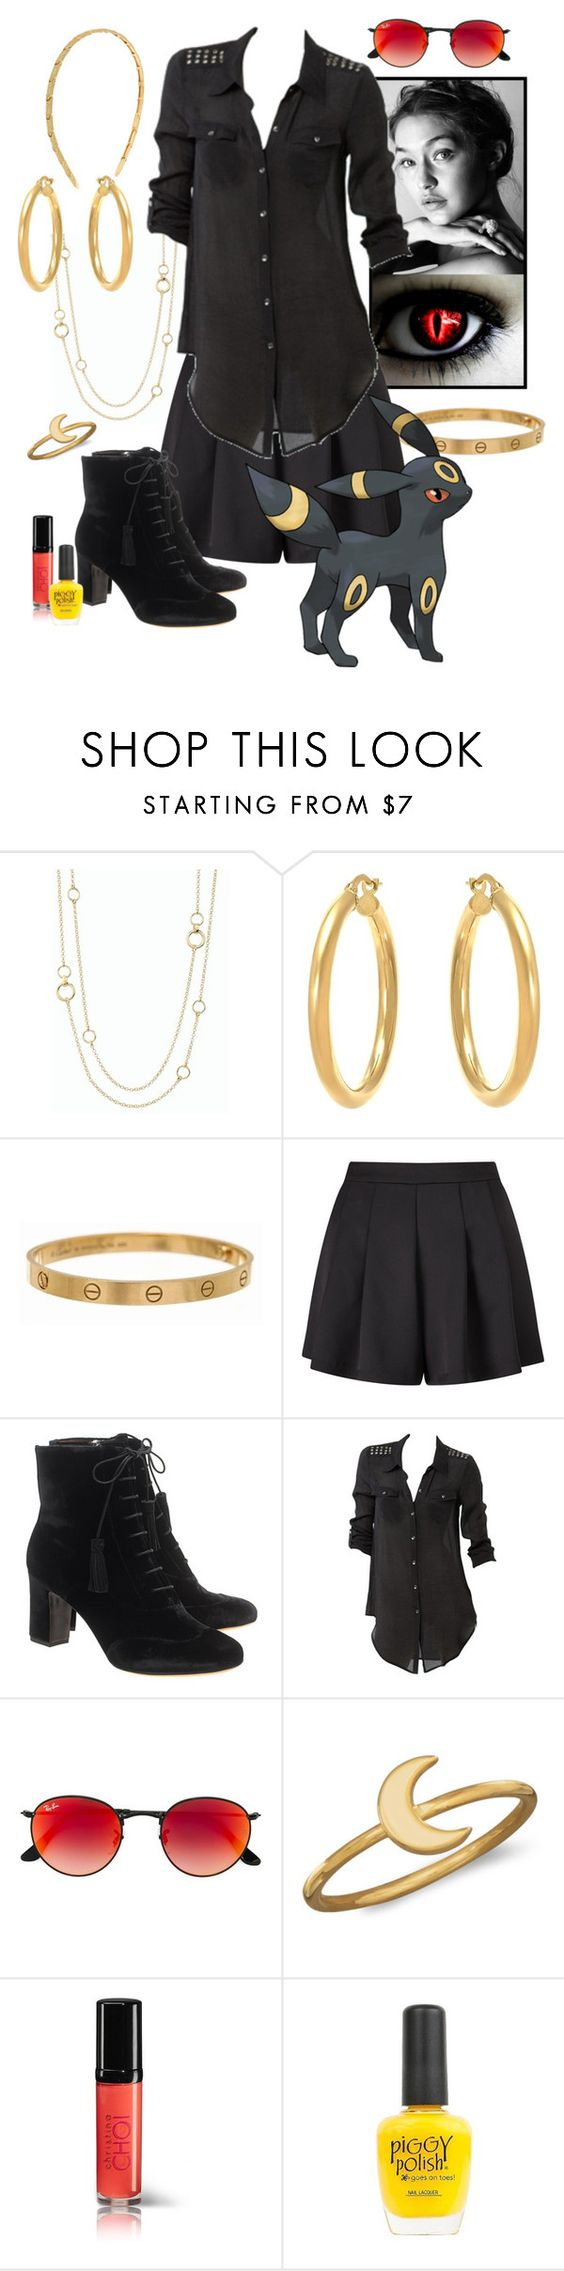 """""""Umbreon"""" by lunar-exorcism ❤ liked on Polyvore featuring Talbots, Cartier, Miss Selfridge, Tabitha Simmons, Bettina Liano, Ray-Ban, BillyTheTree, Piggy Polish, Henri Bendel and Pokemon"""